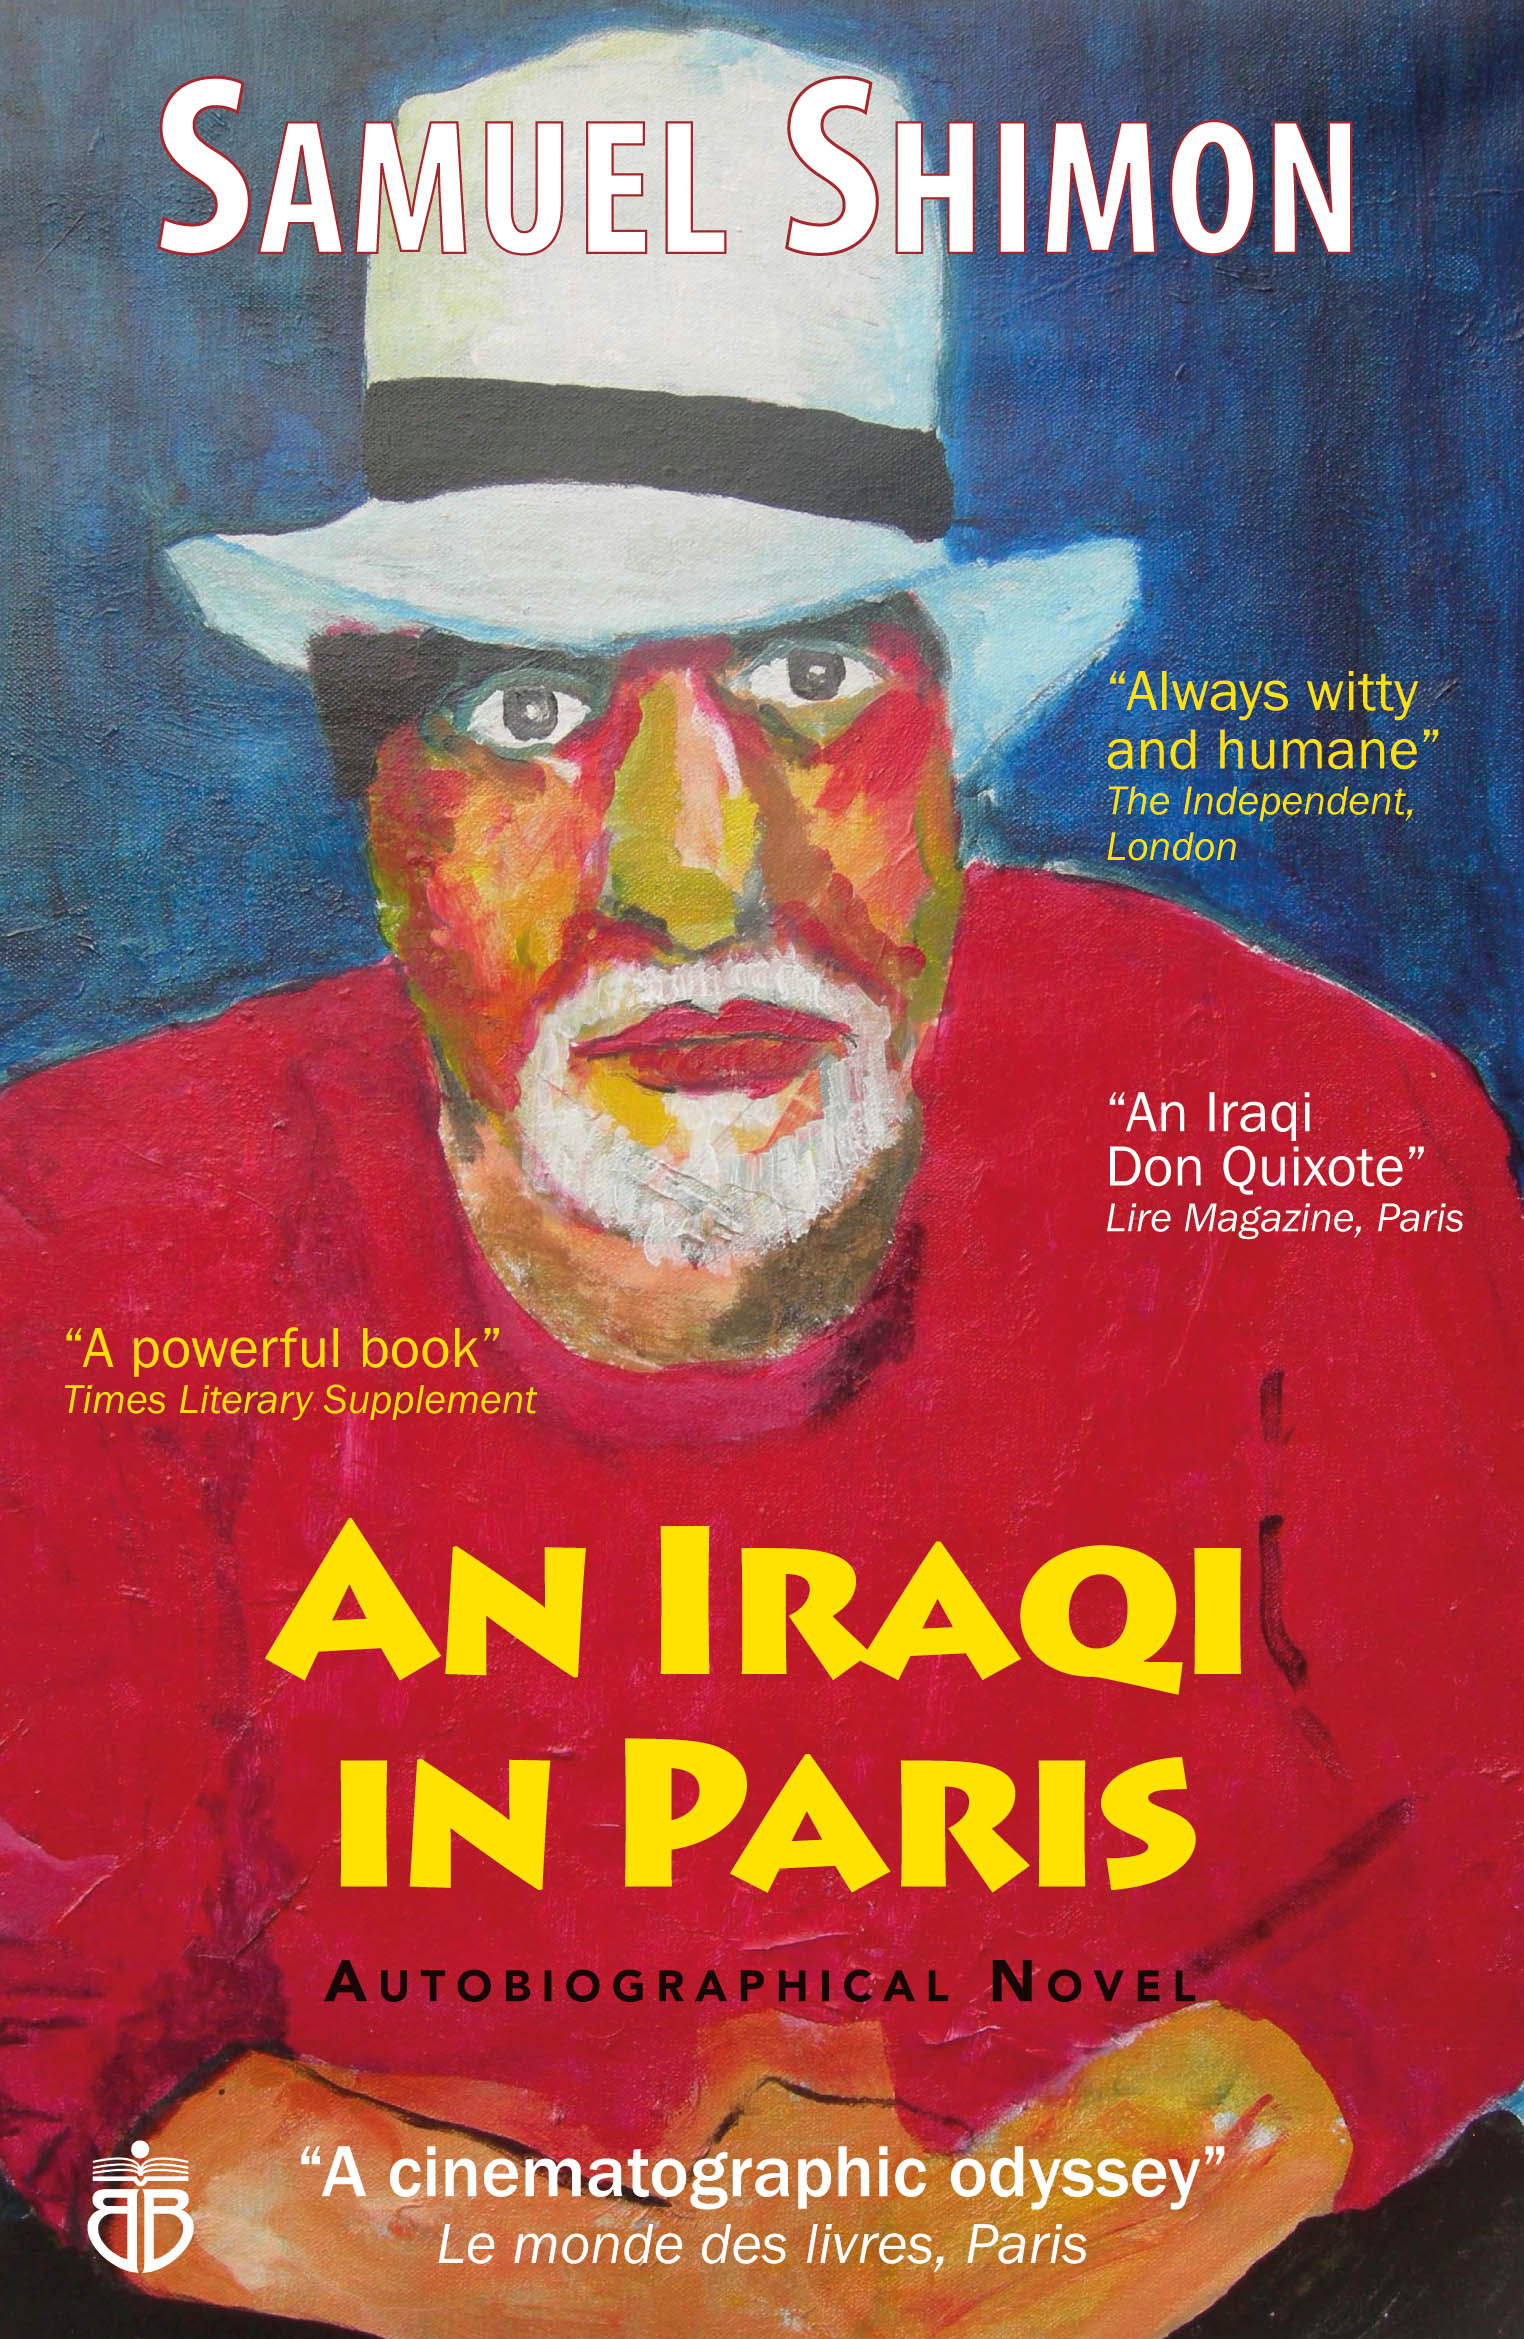 An Iraqi in Paris (3rd edition, 2016)